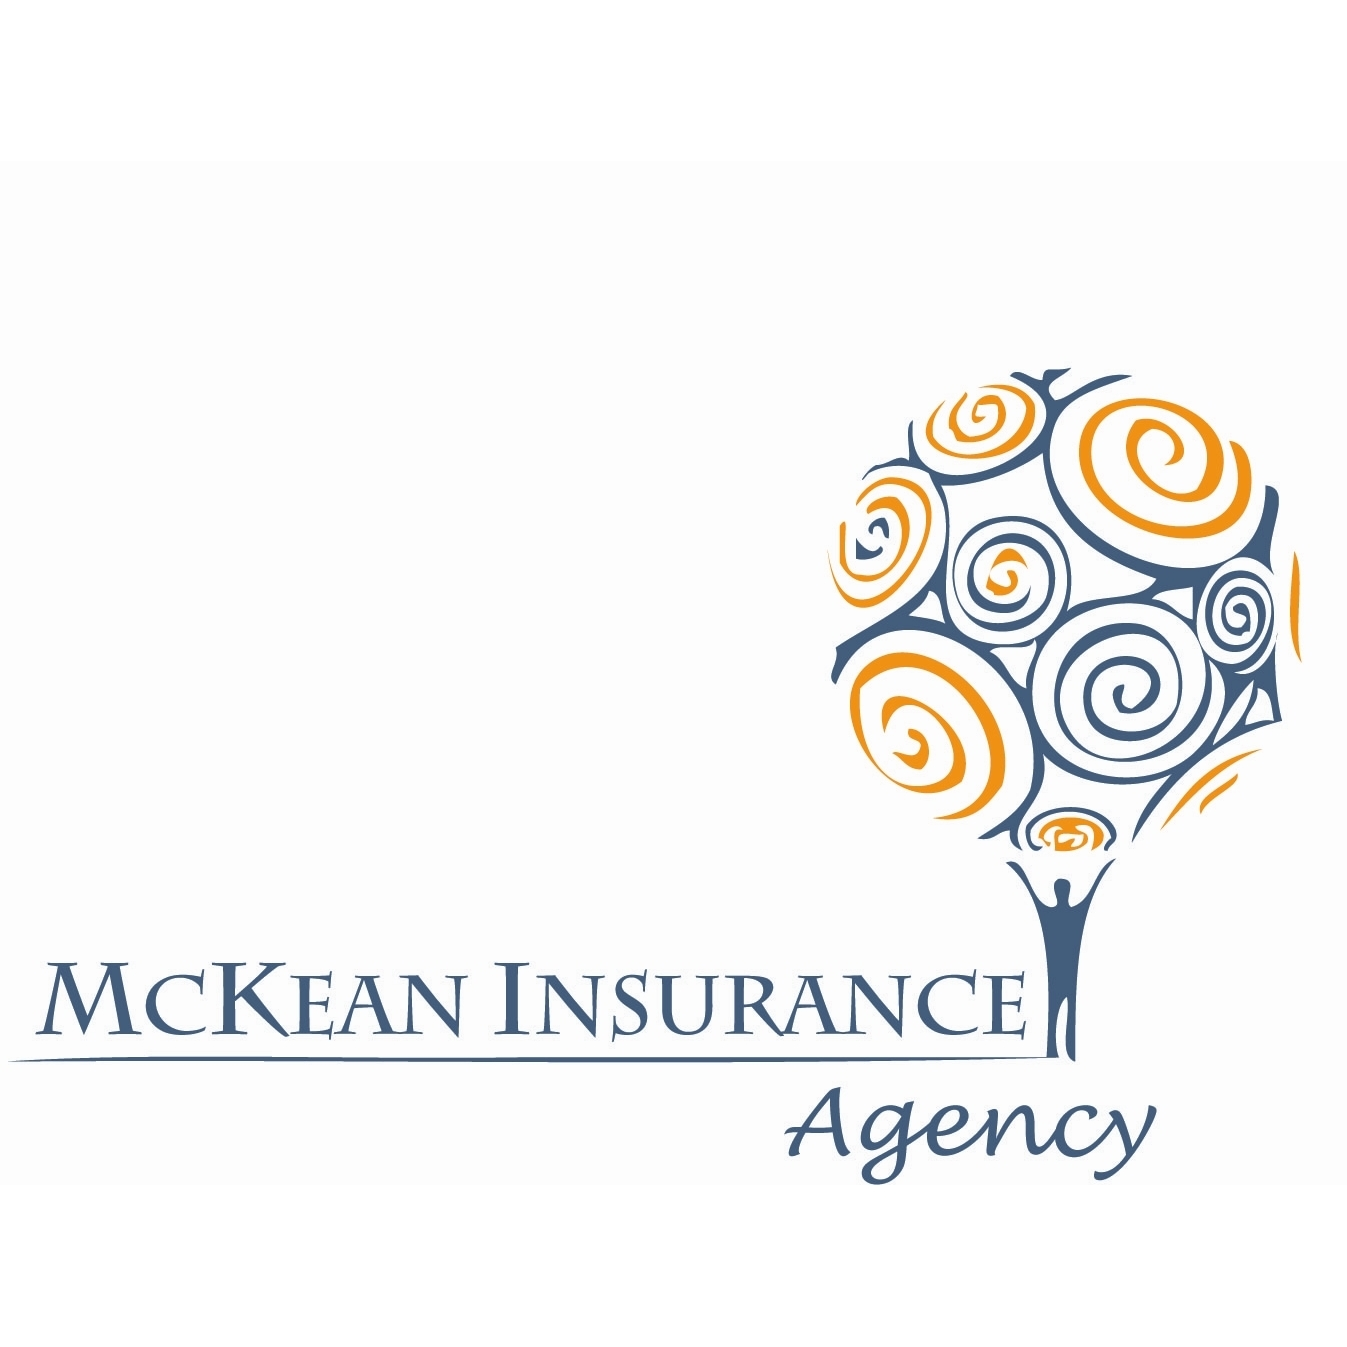 McKean Insurance Agency Coupons Near Me In Parker 8coupons